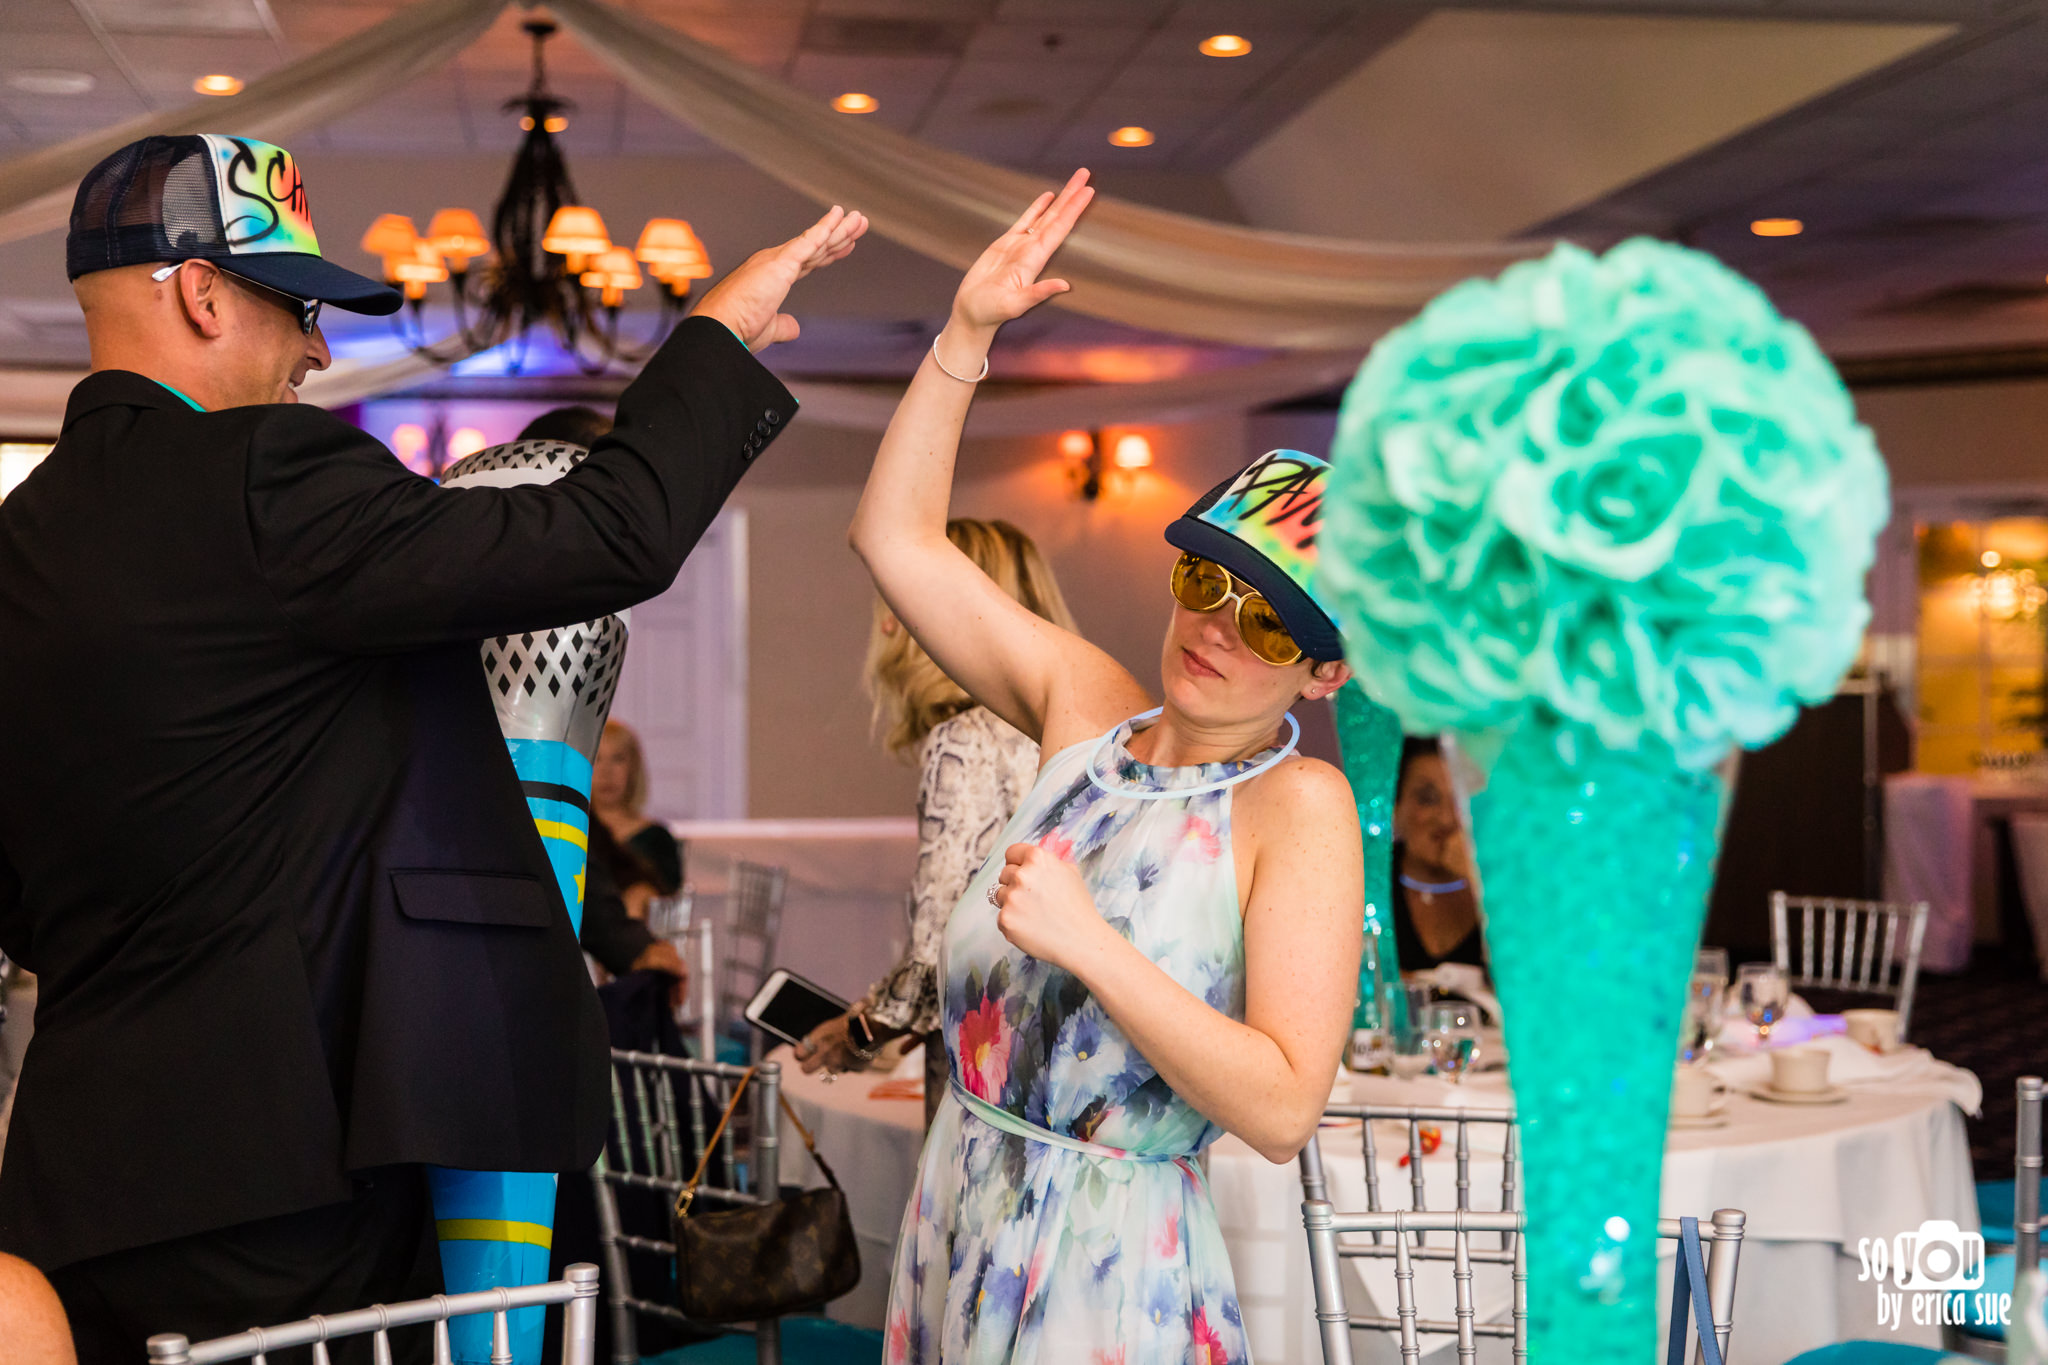 so-you-by-erica-sue-bnai-mitzvah-photographer-delray-beach-golf-club-fl-3710.jpg